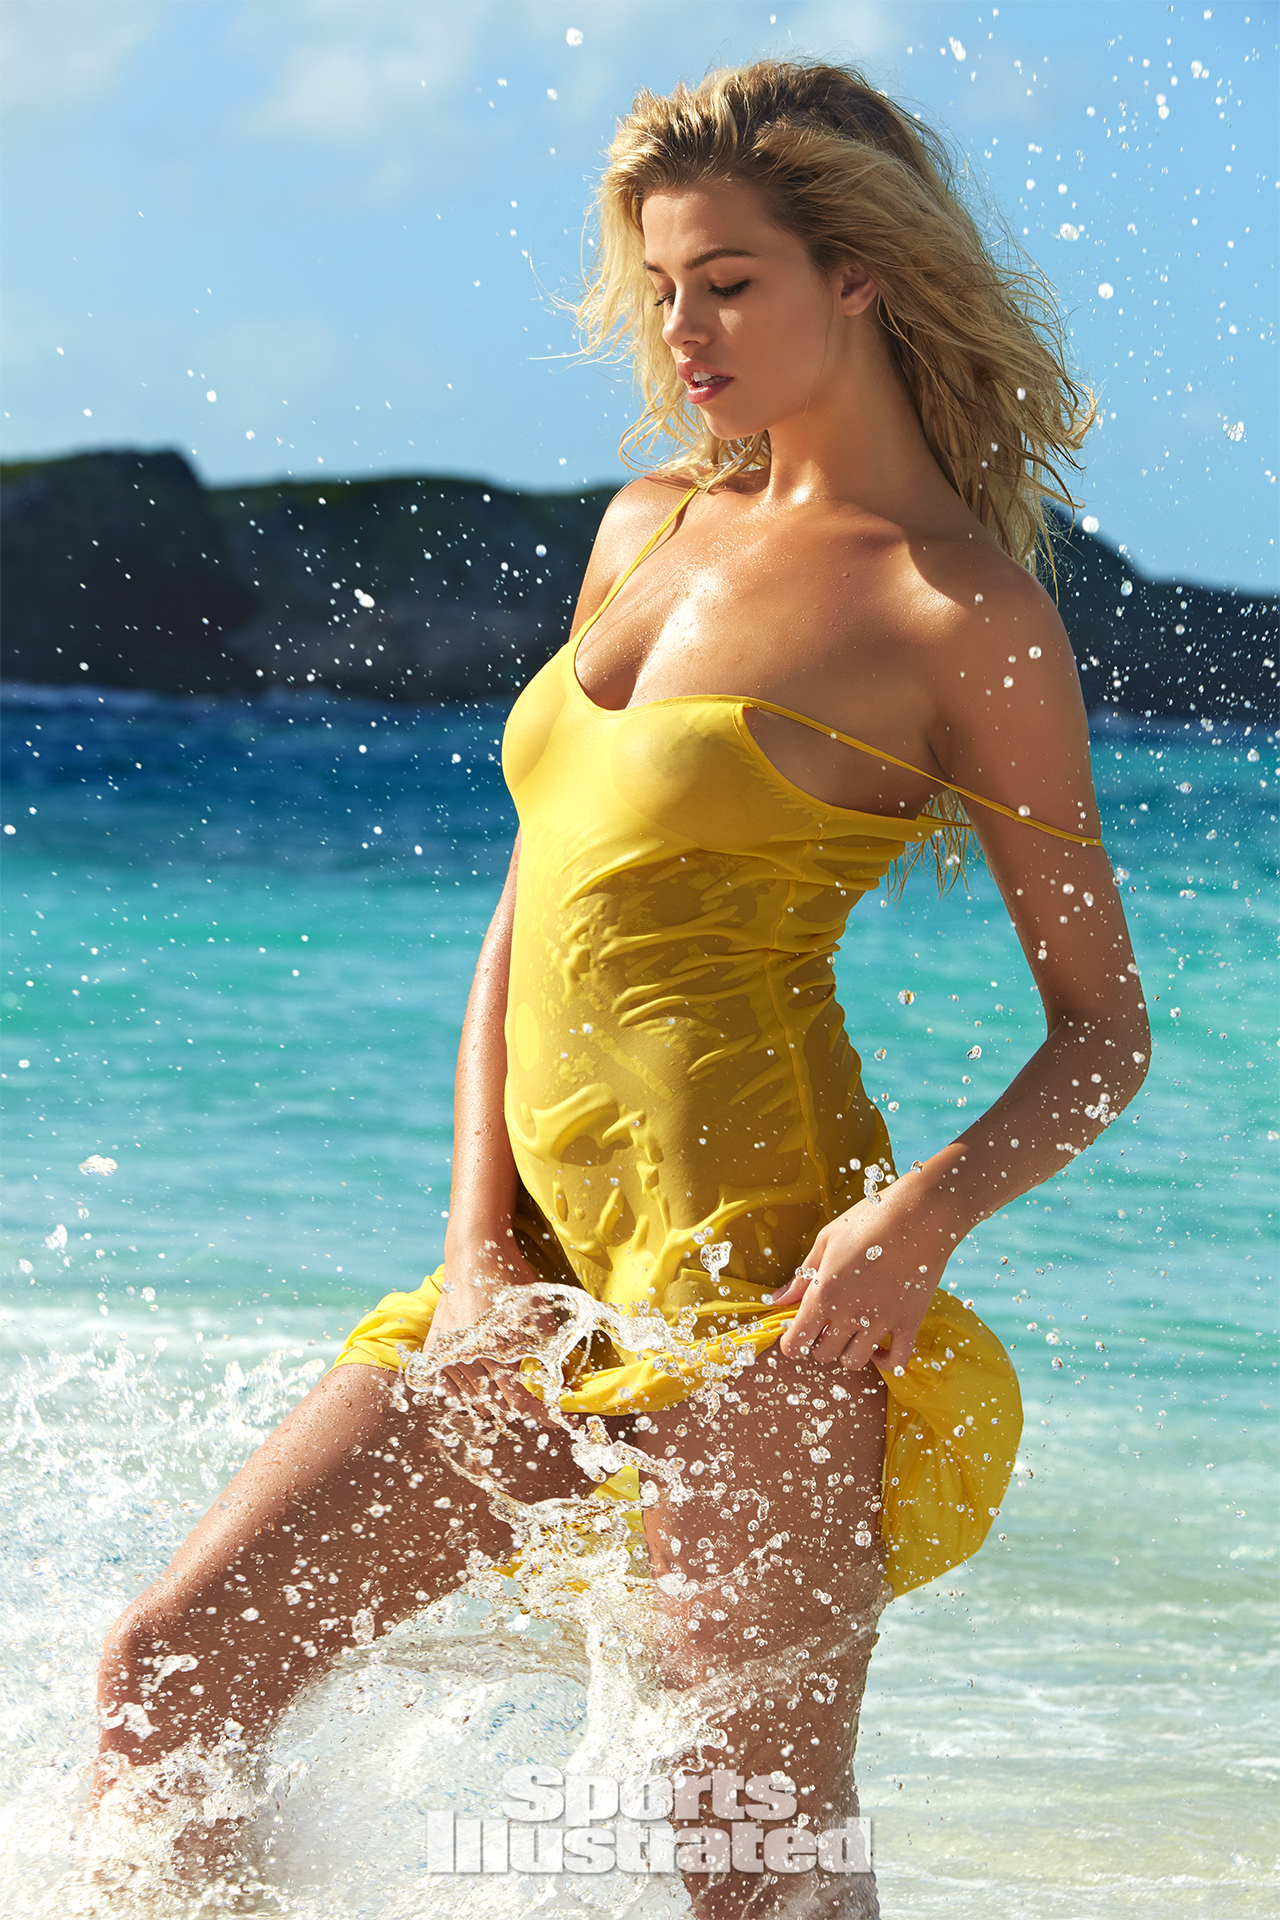 Hailey Clauson was photographed by James Macari in Turks & Caicos. Dress by Krisana Sotelo